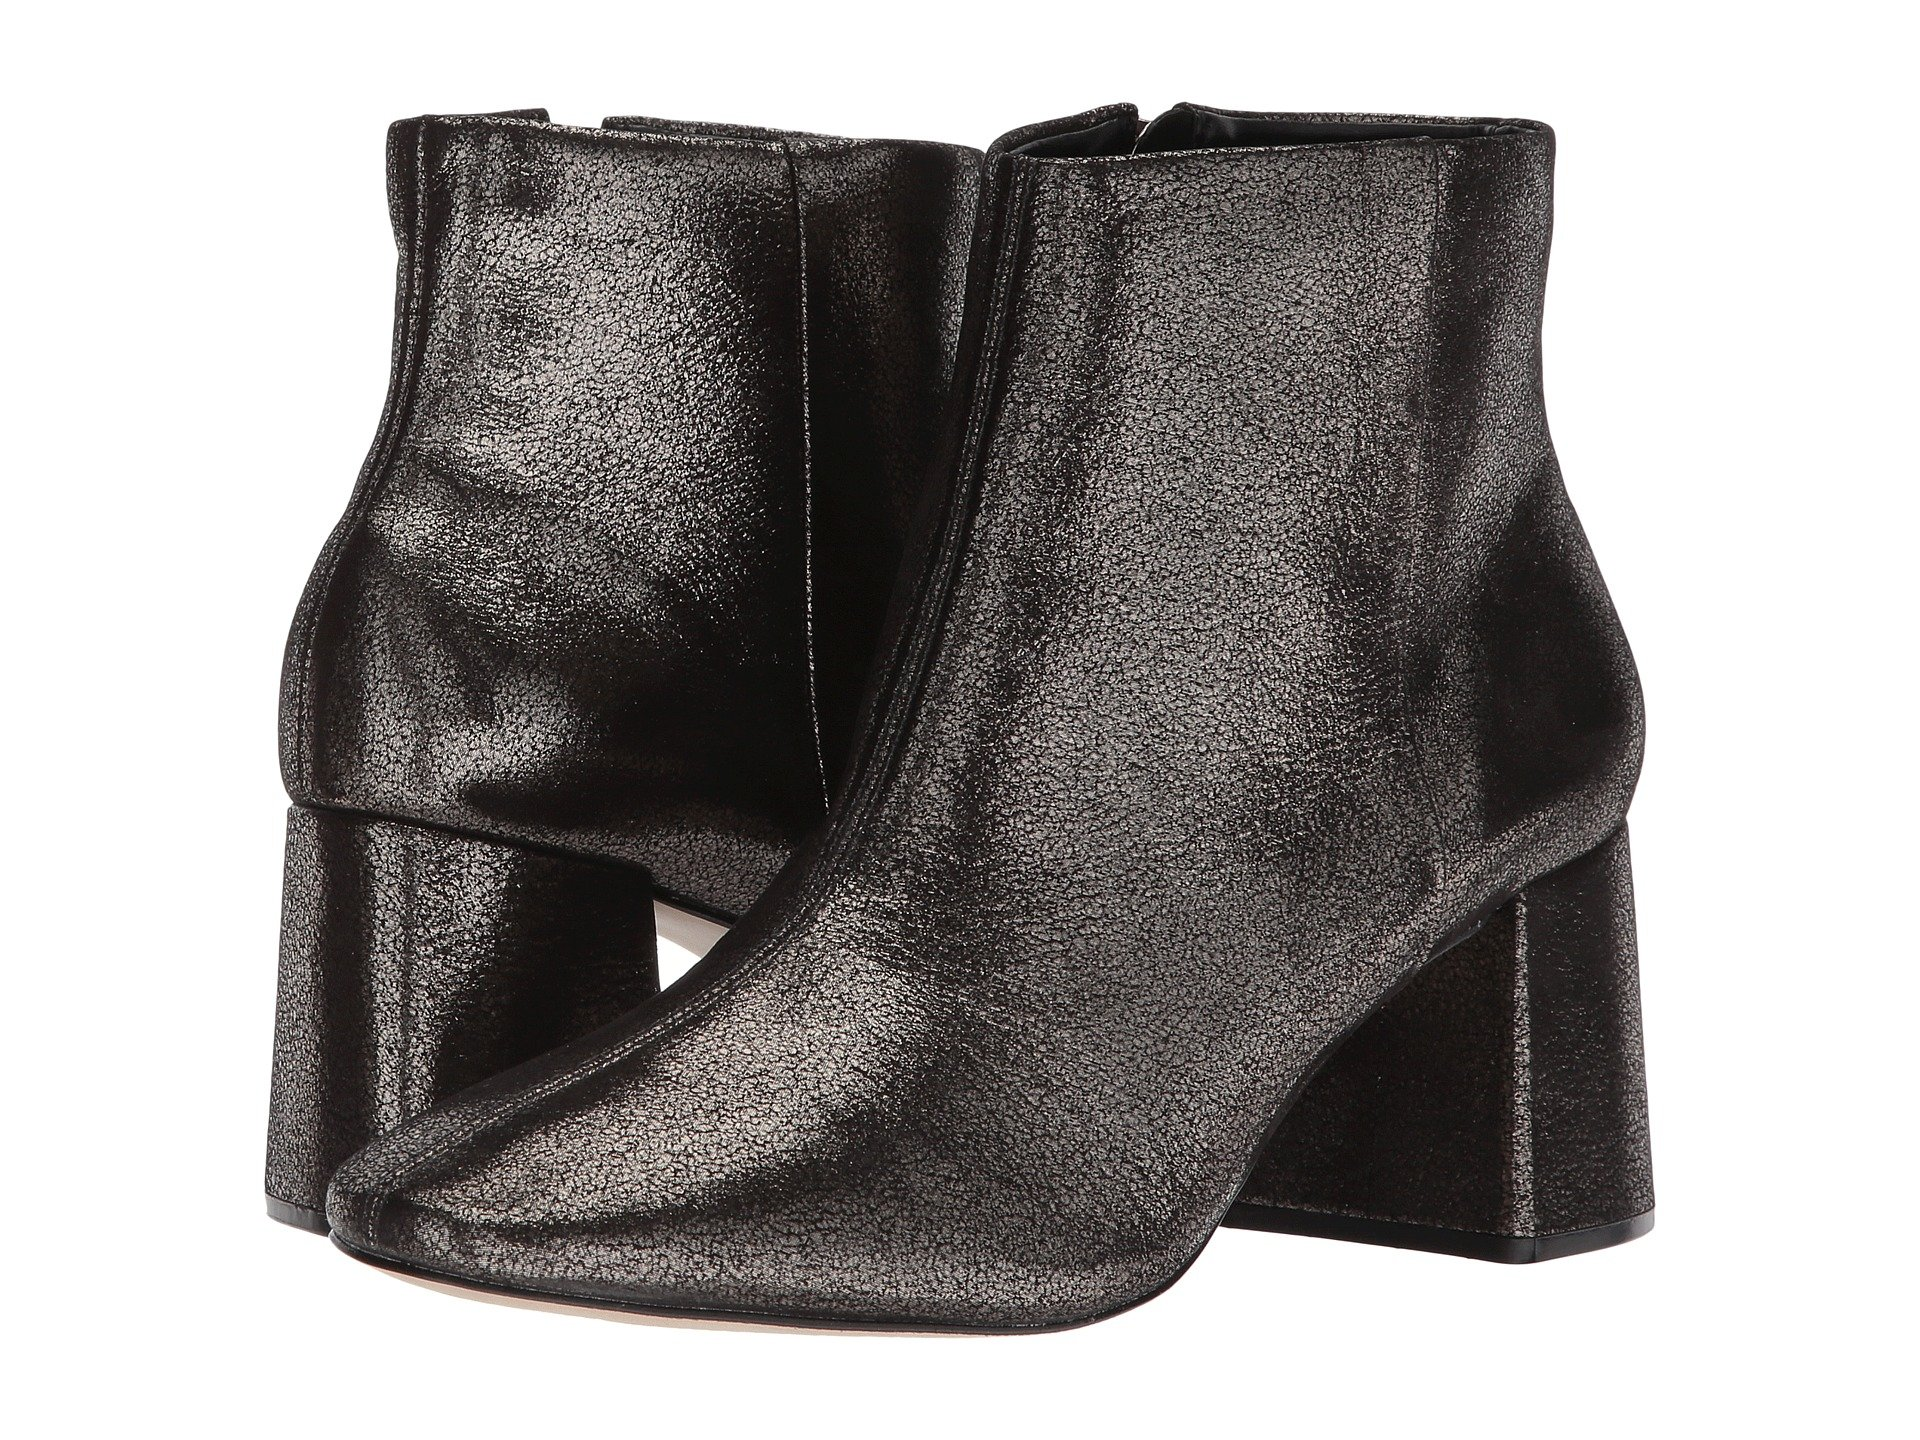 MASSIMO MATTEO Cracked Block Heel Bootie, Pewter